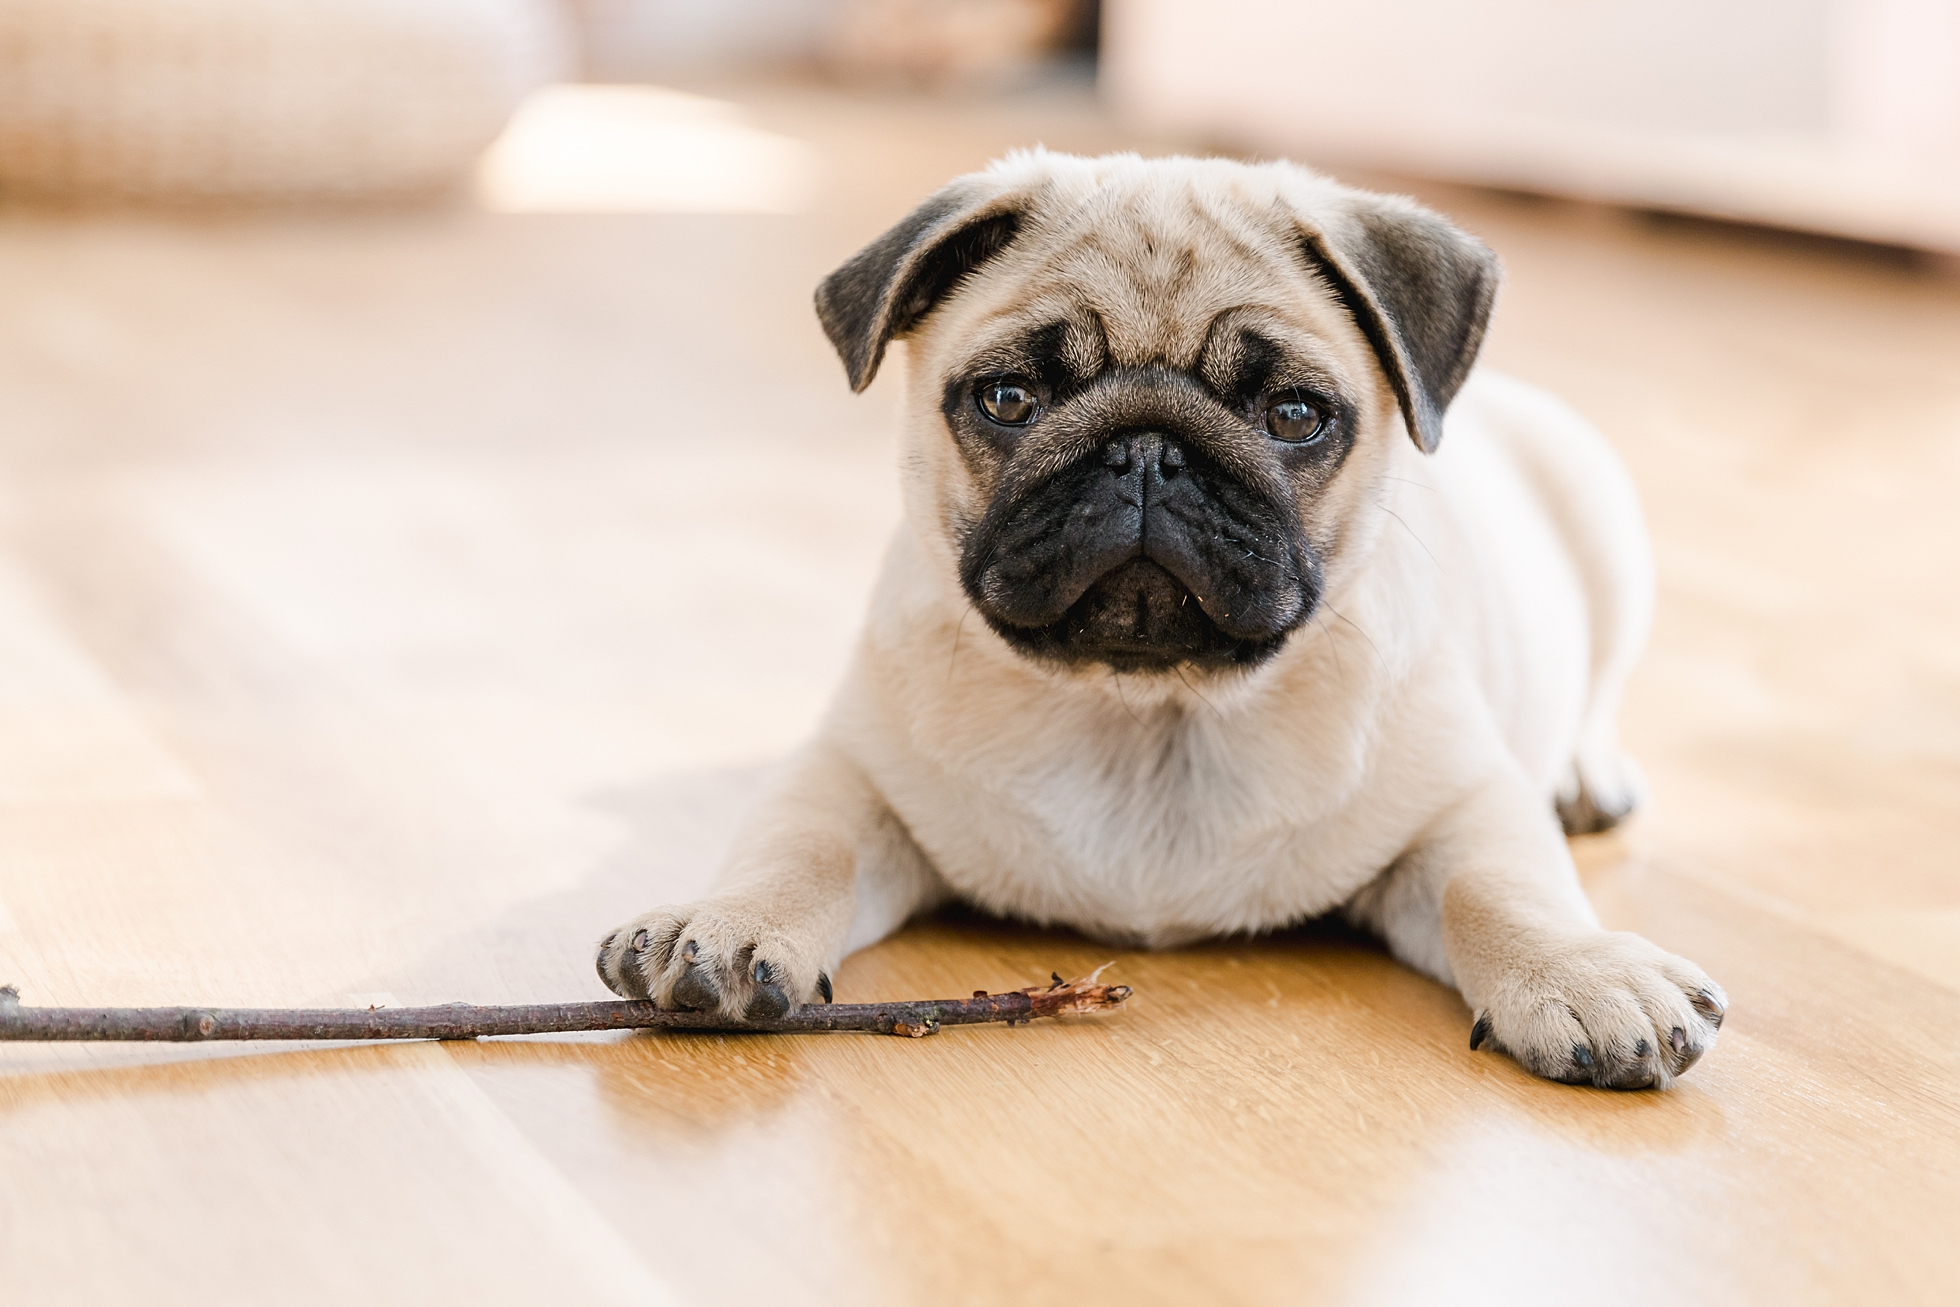 A cute pug puppy lying on the floor with a stick